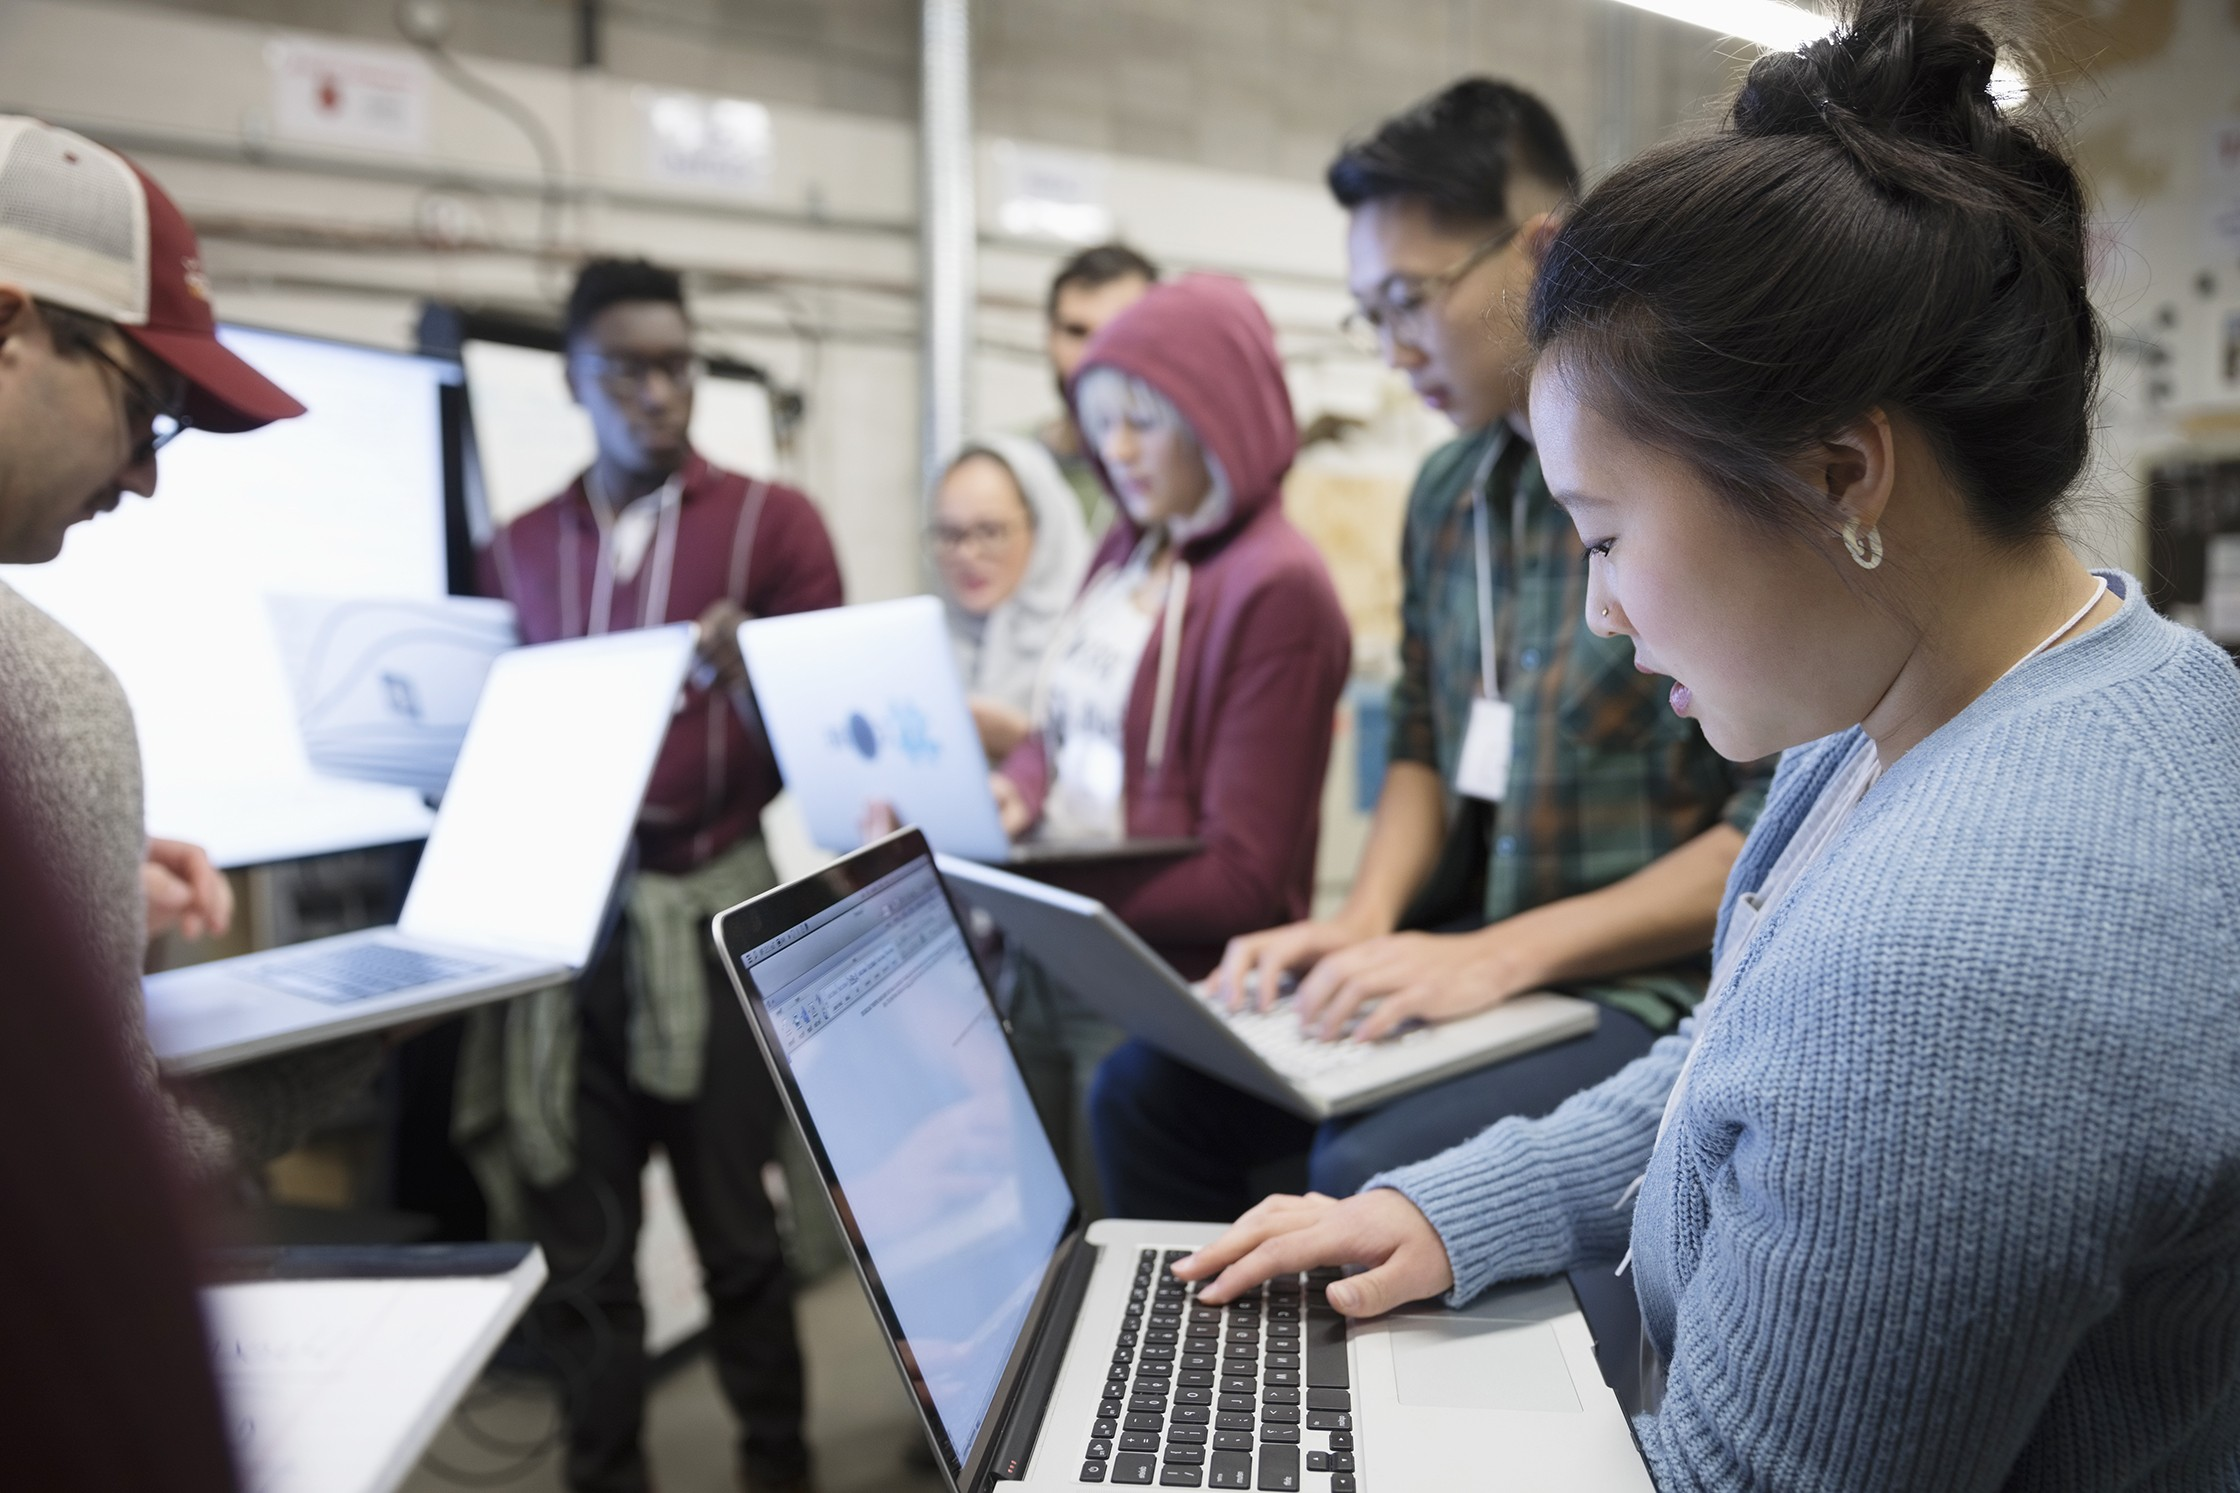 7 Surprising Ways A Hackathon Will Boost Your Employabilityviewpoint Wiring Harness Design Jobs In Canada Careers Advice Blog